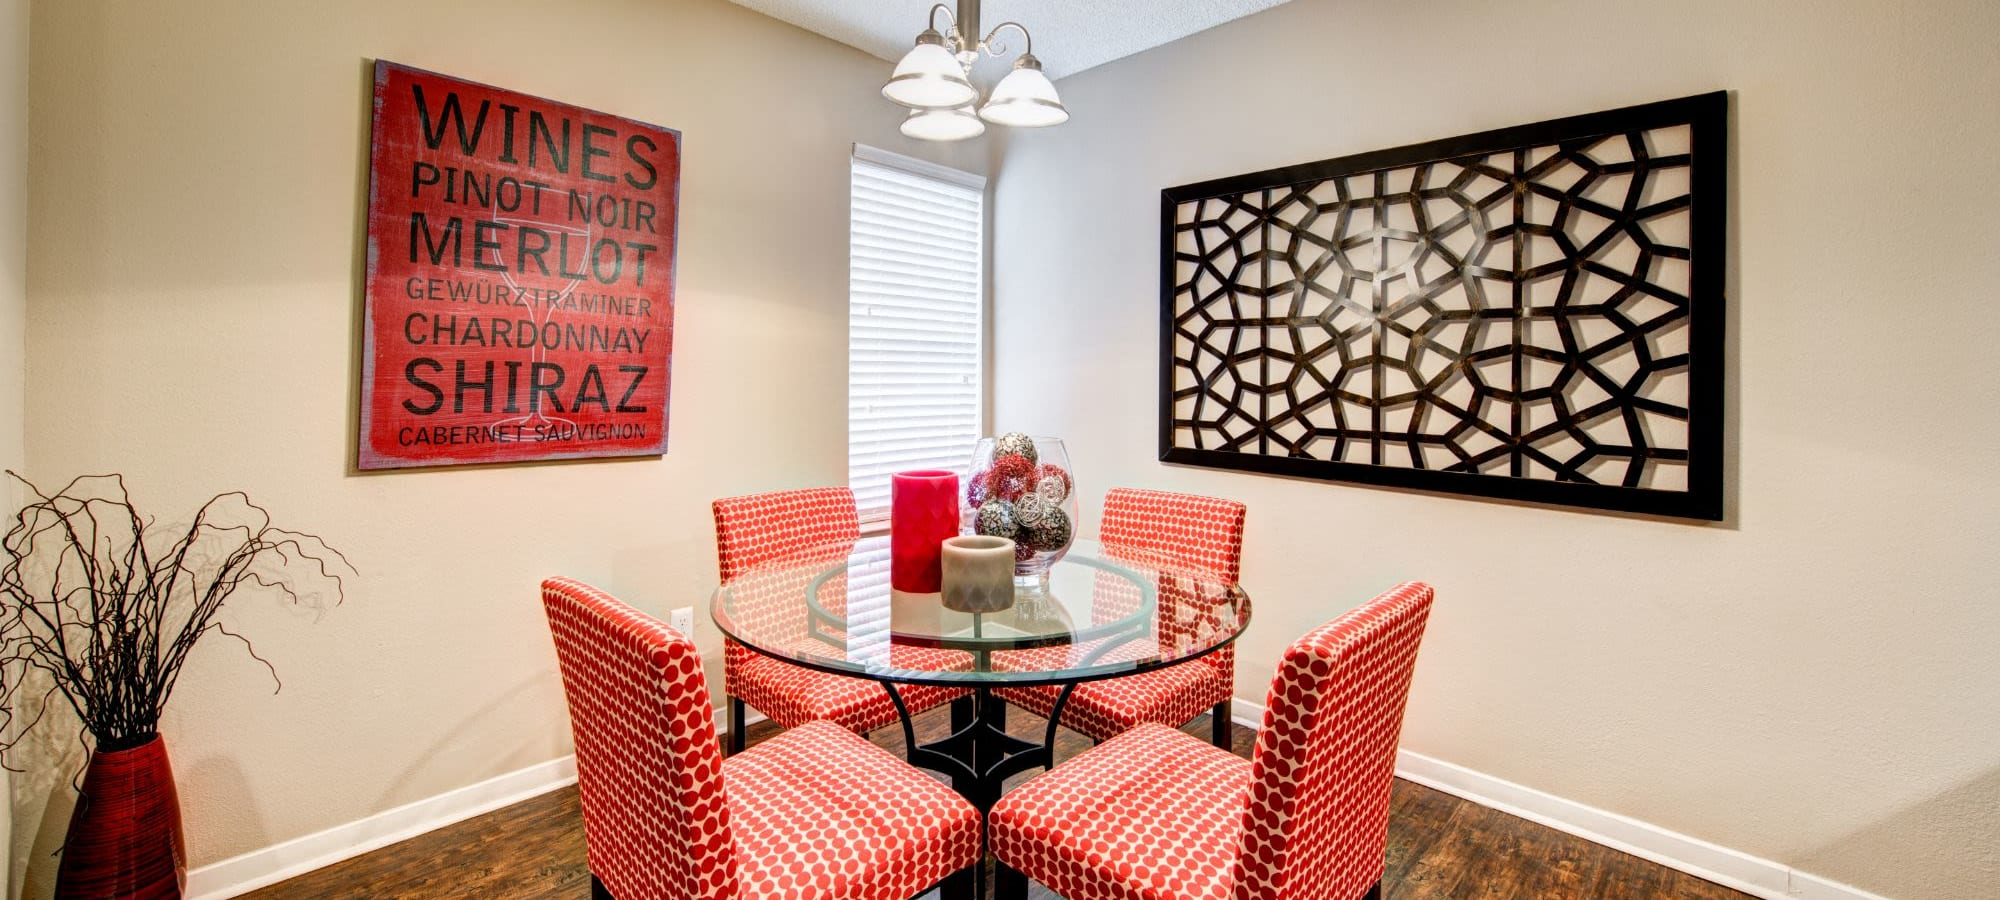 Apply to live at The Park at Flower Mound in Flower Mound, Texas